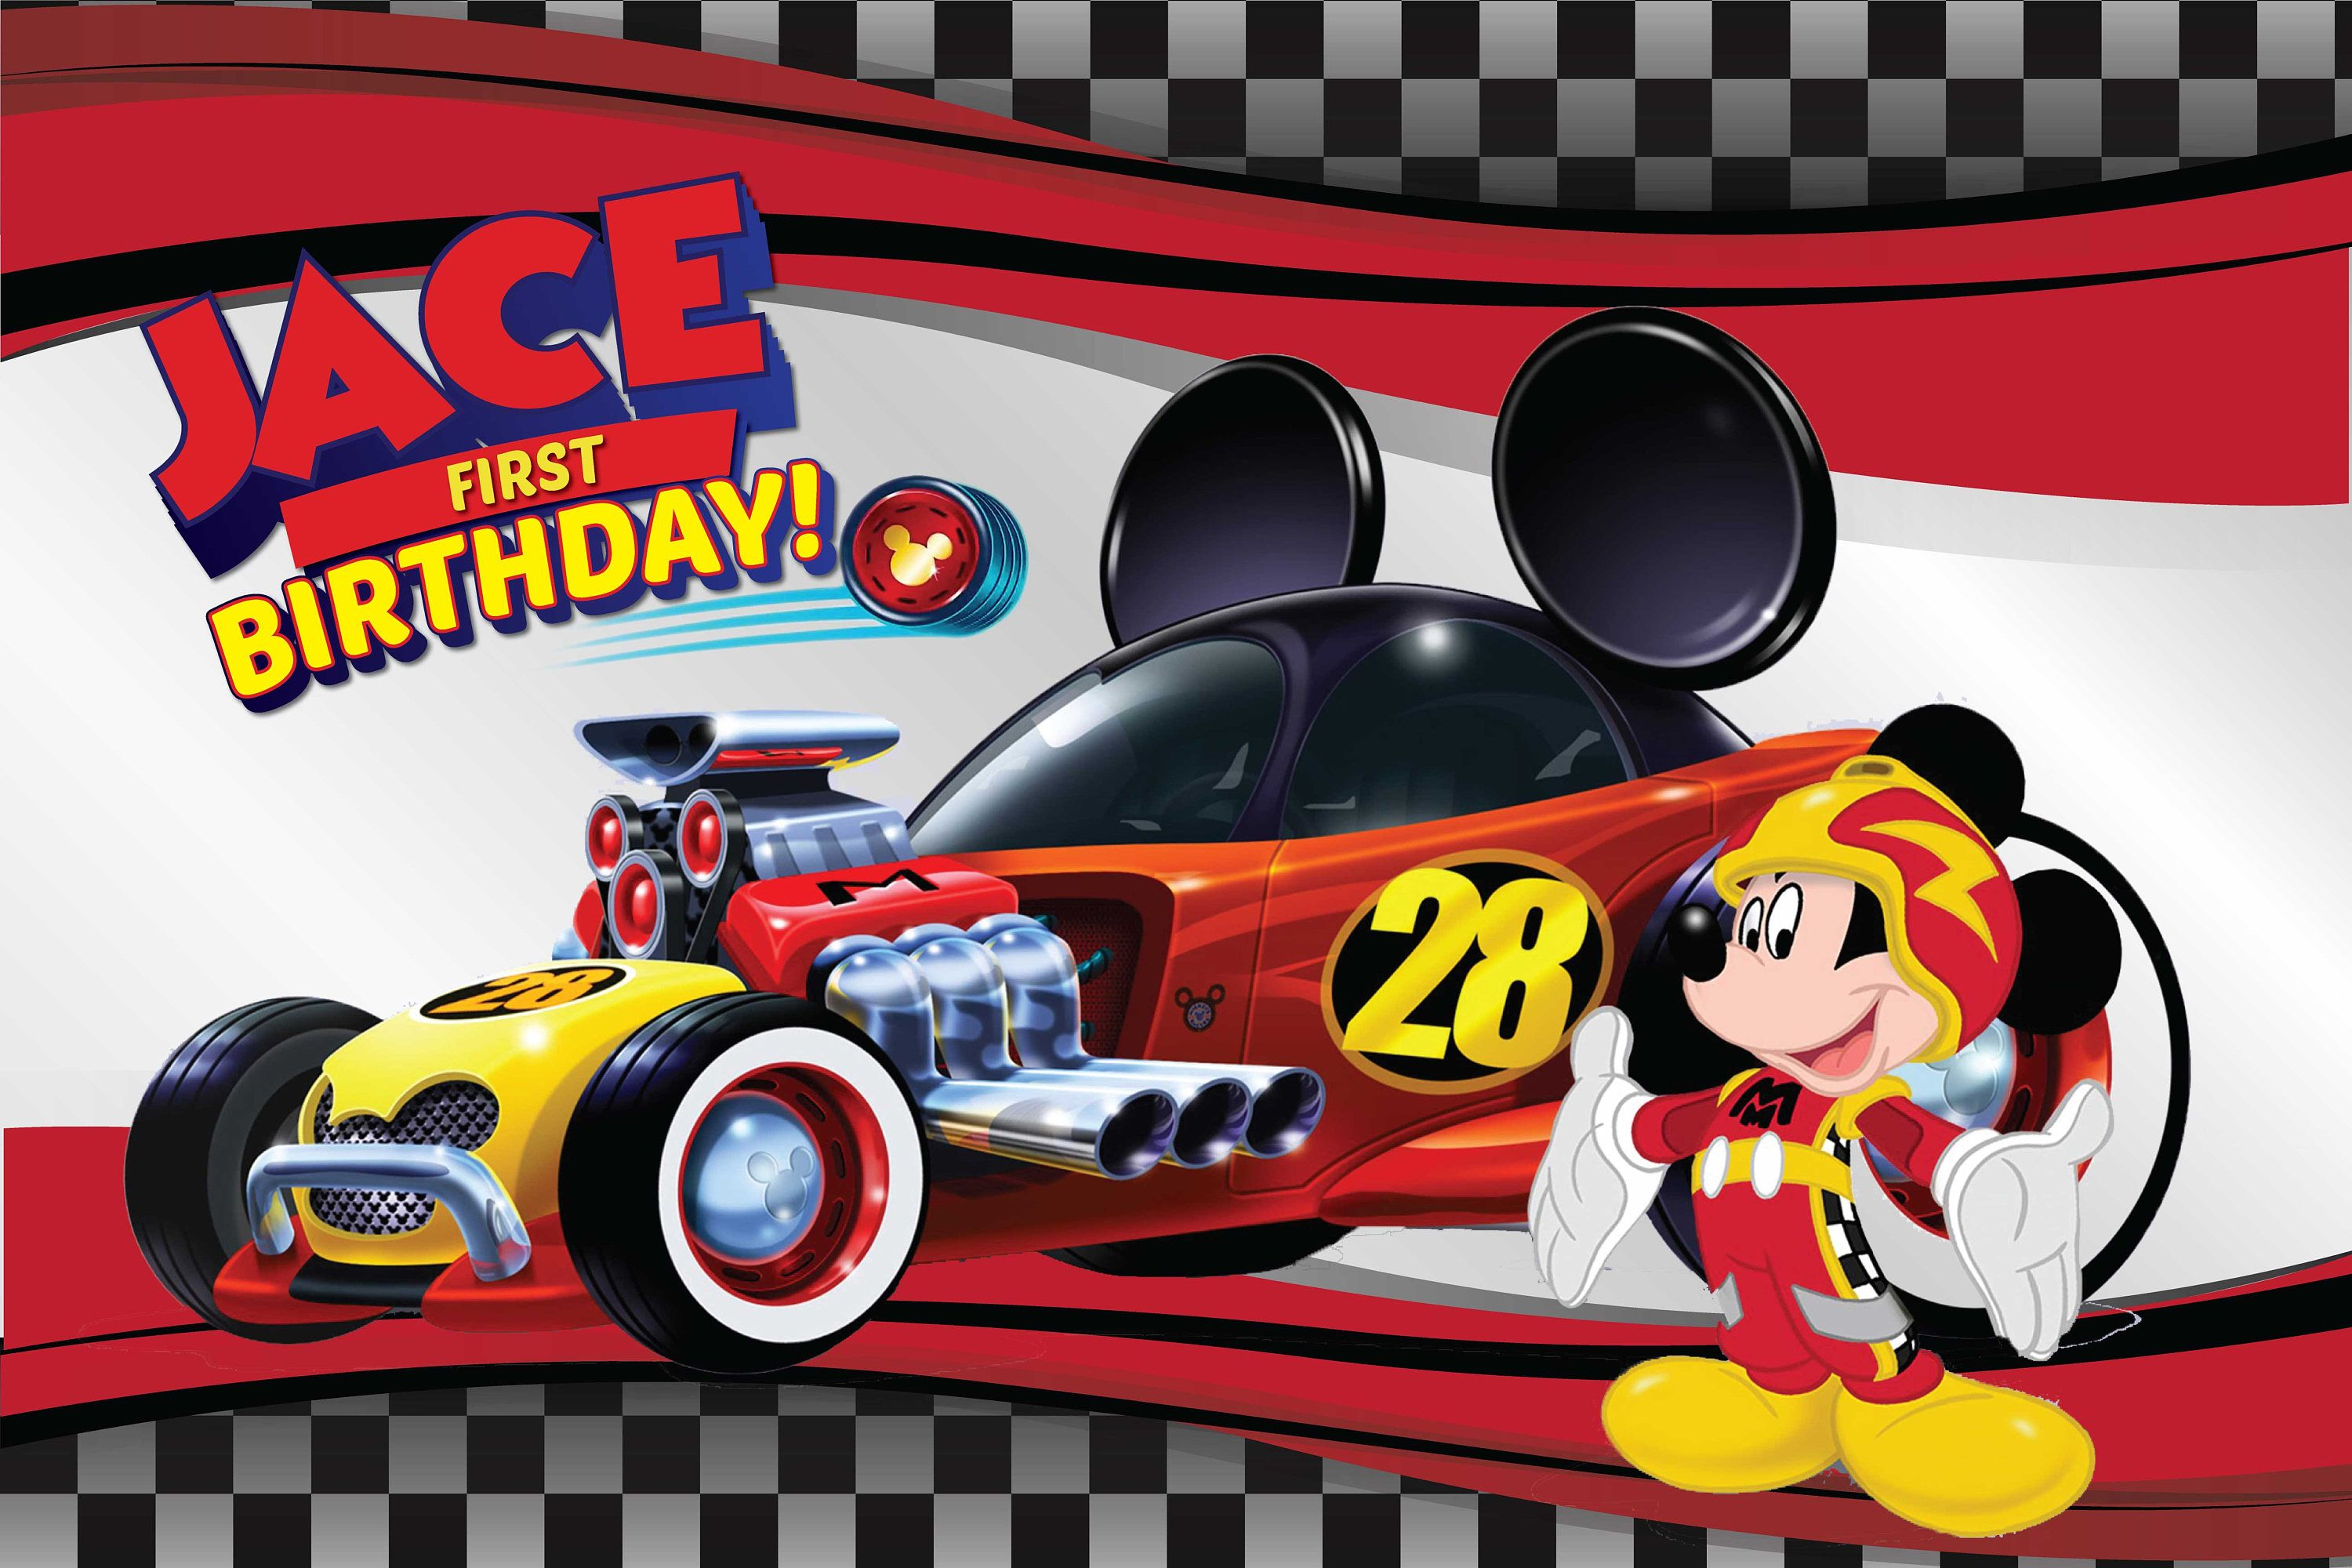 32 Email Pfizer Contact Usco Ltd Mail: Mickey Template Birthday Background Www Topsimages Com: 15